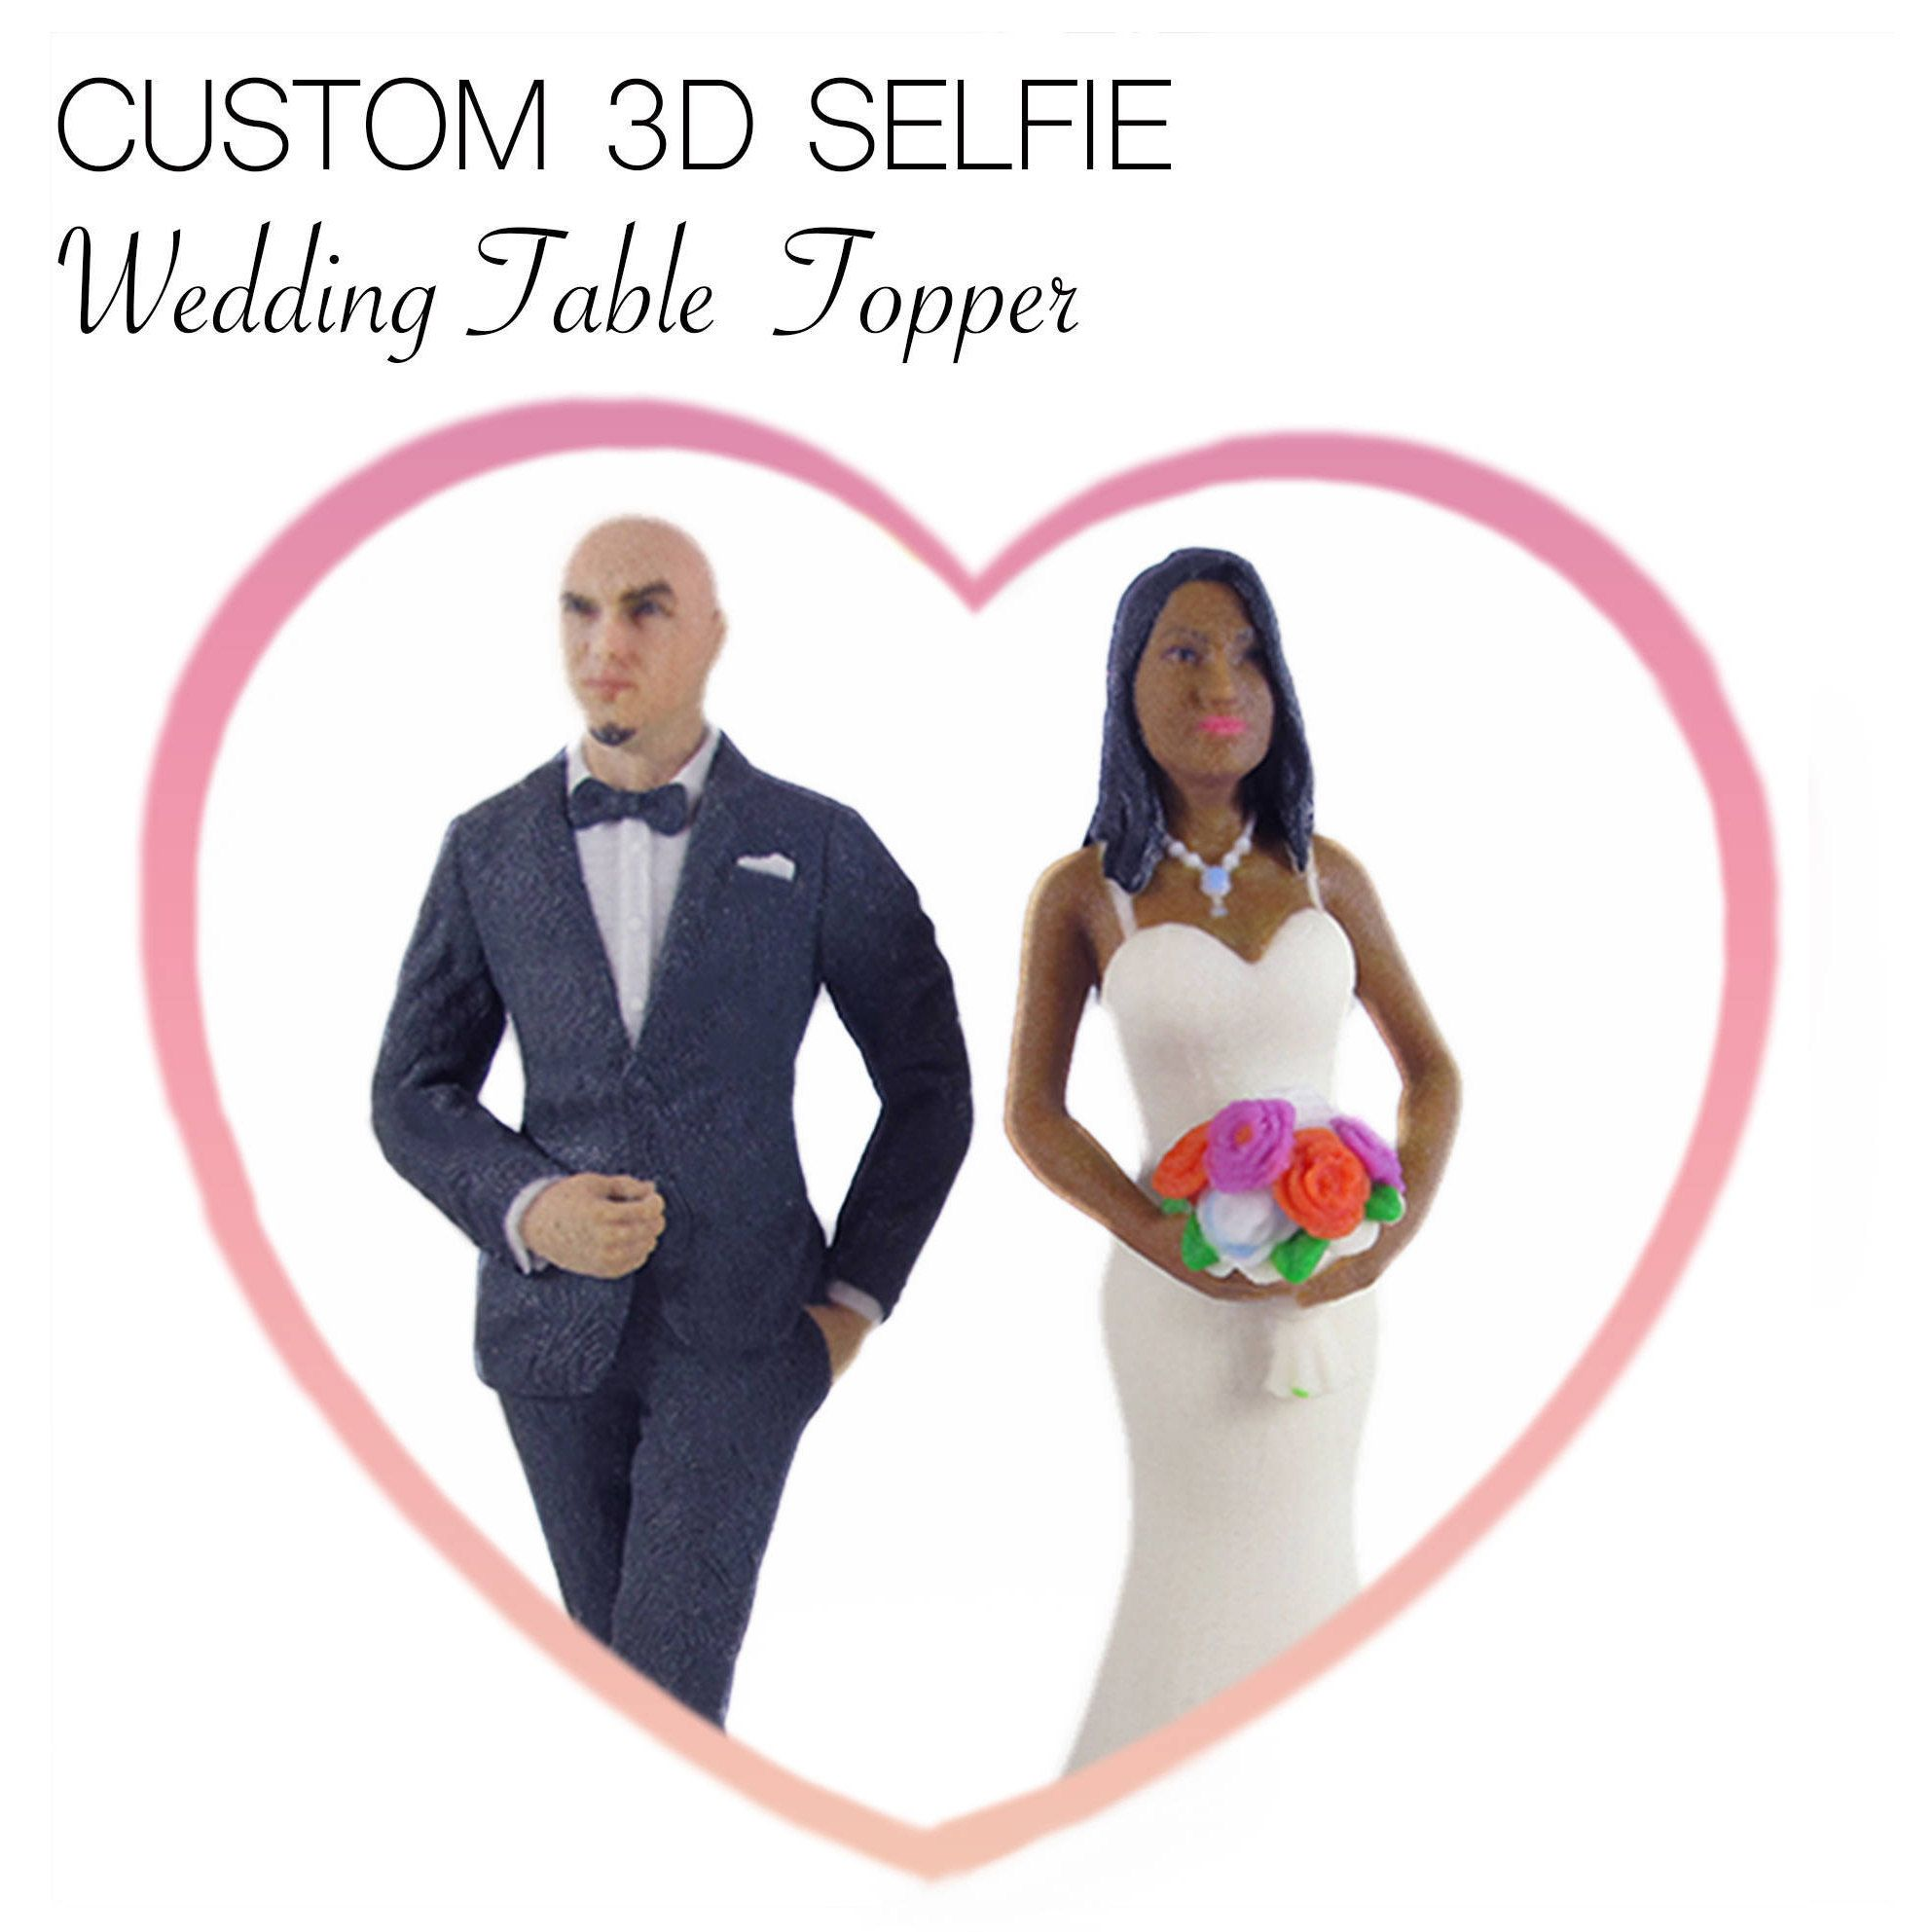 65127080fcb Mixed Race Wedding Cake topper, 3D Selfie Mr & Mrs, Personalized 3D Printed  Figurines. White Bride Dress and Black Wedding Suits.